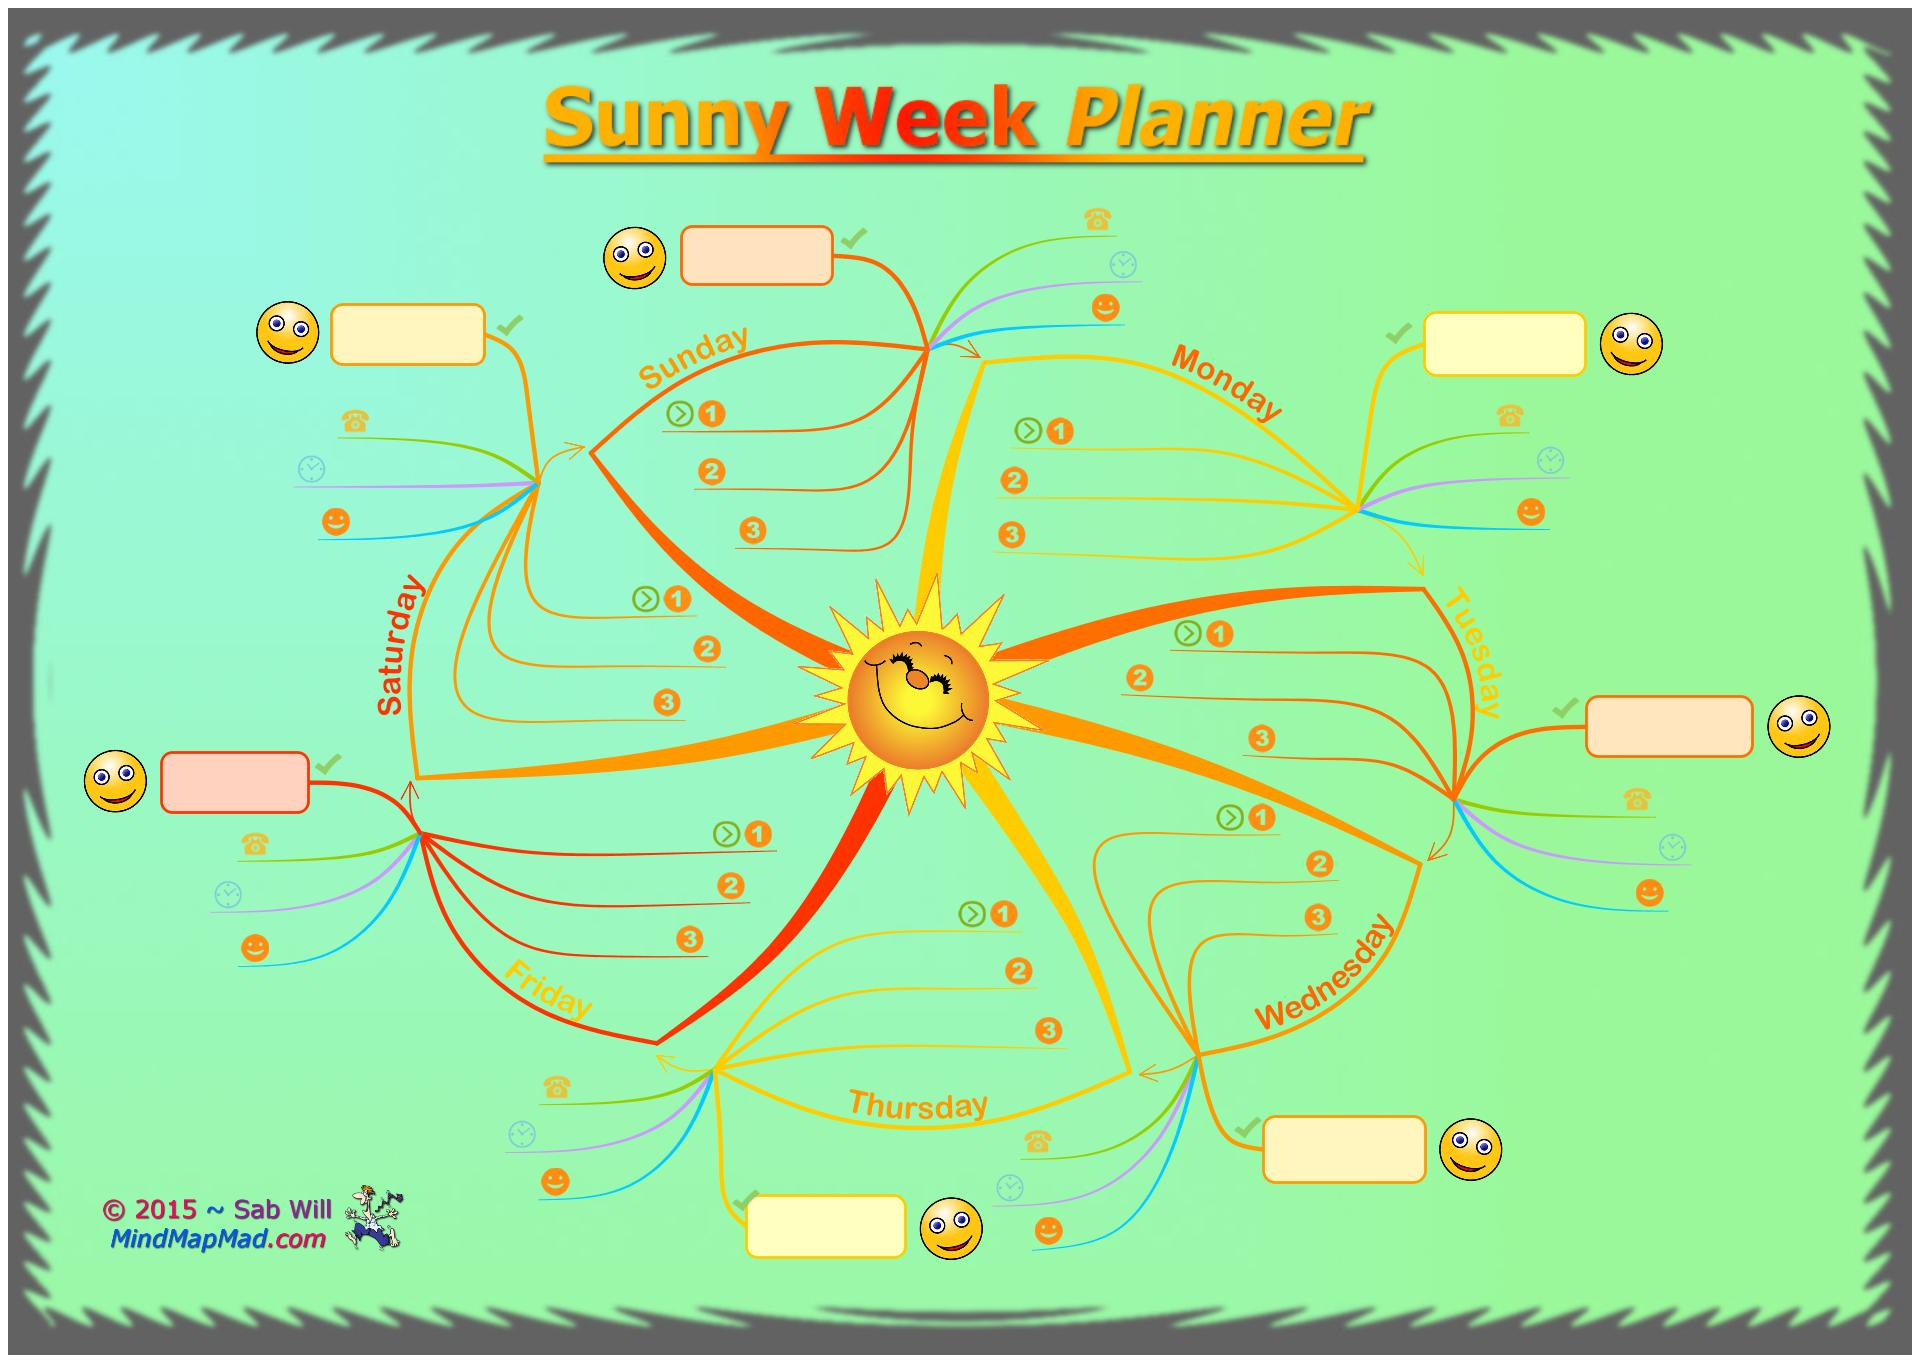 Sunny Weekly Planner